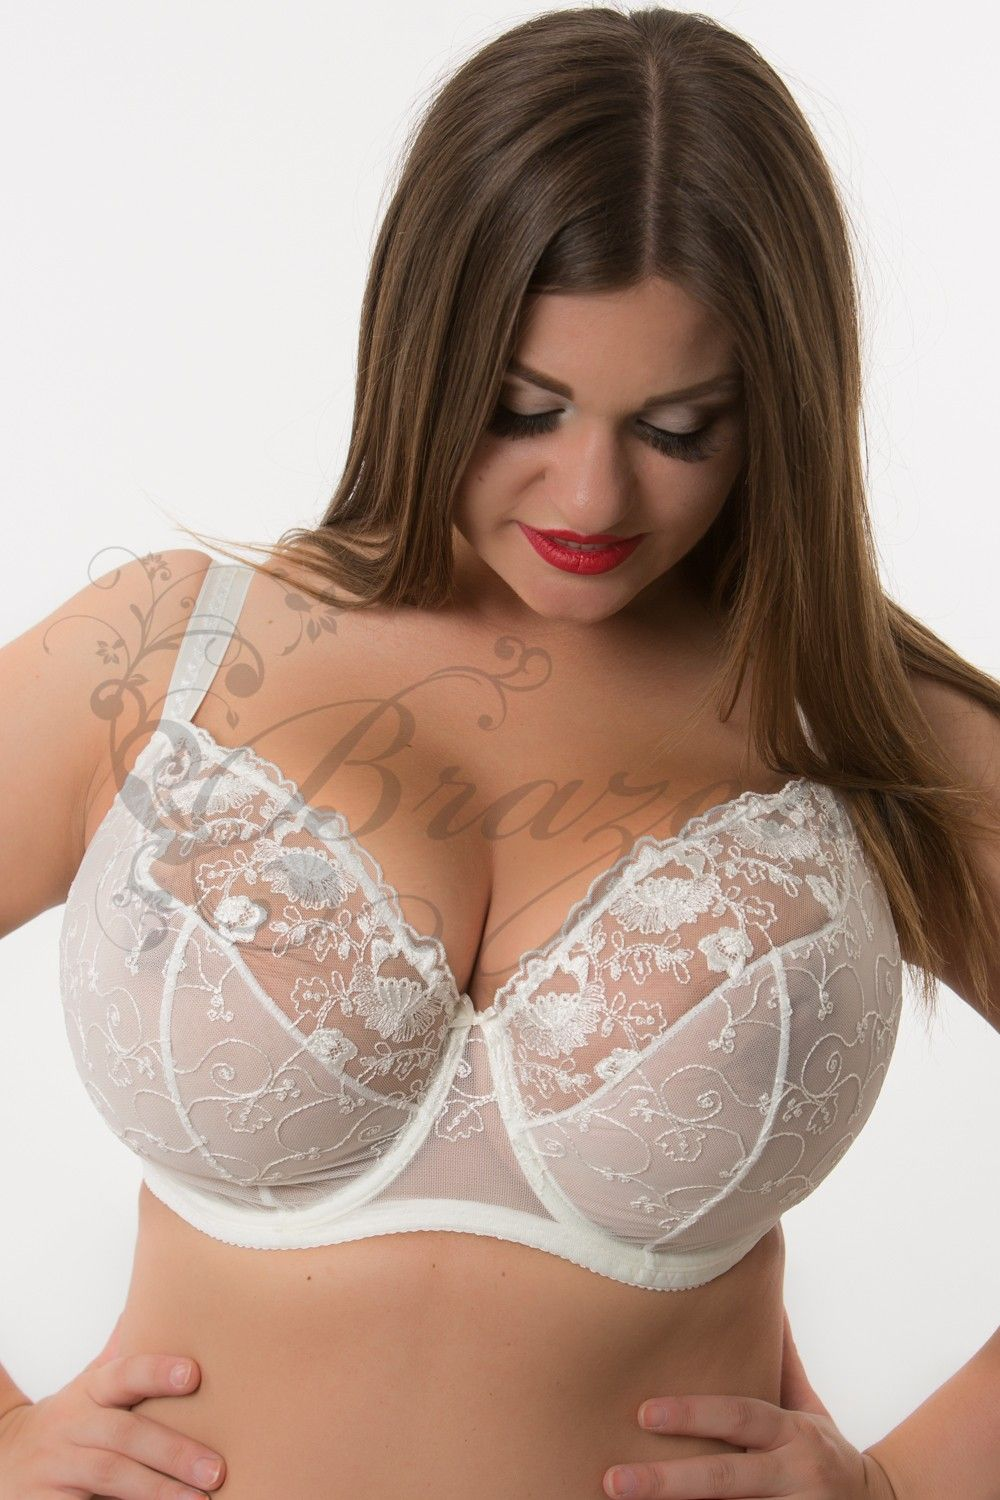 df96f62e351 Soft cup bra in a large chest of Lupoline - BRAZERIE